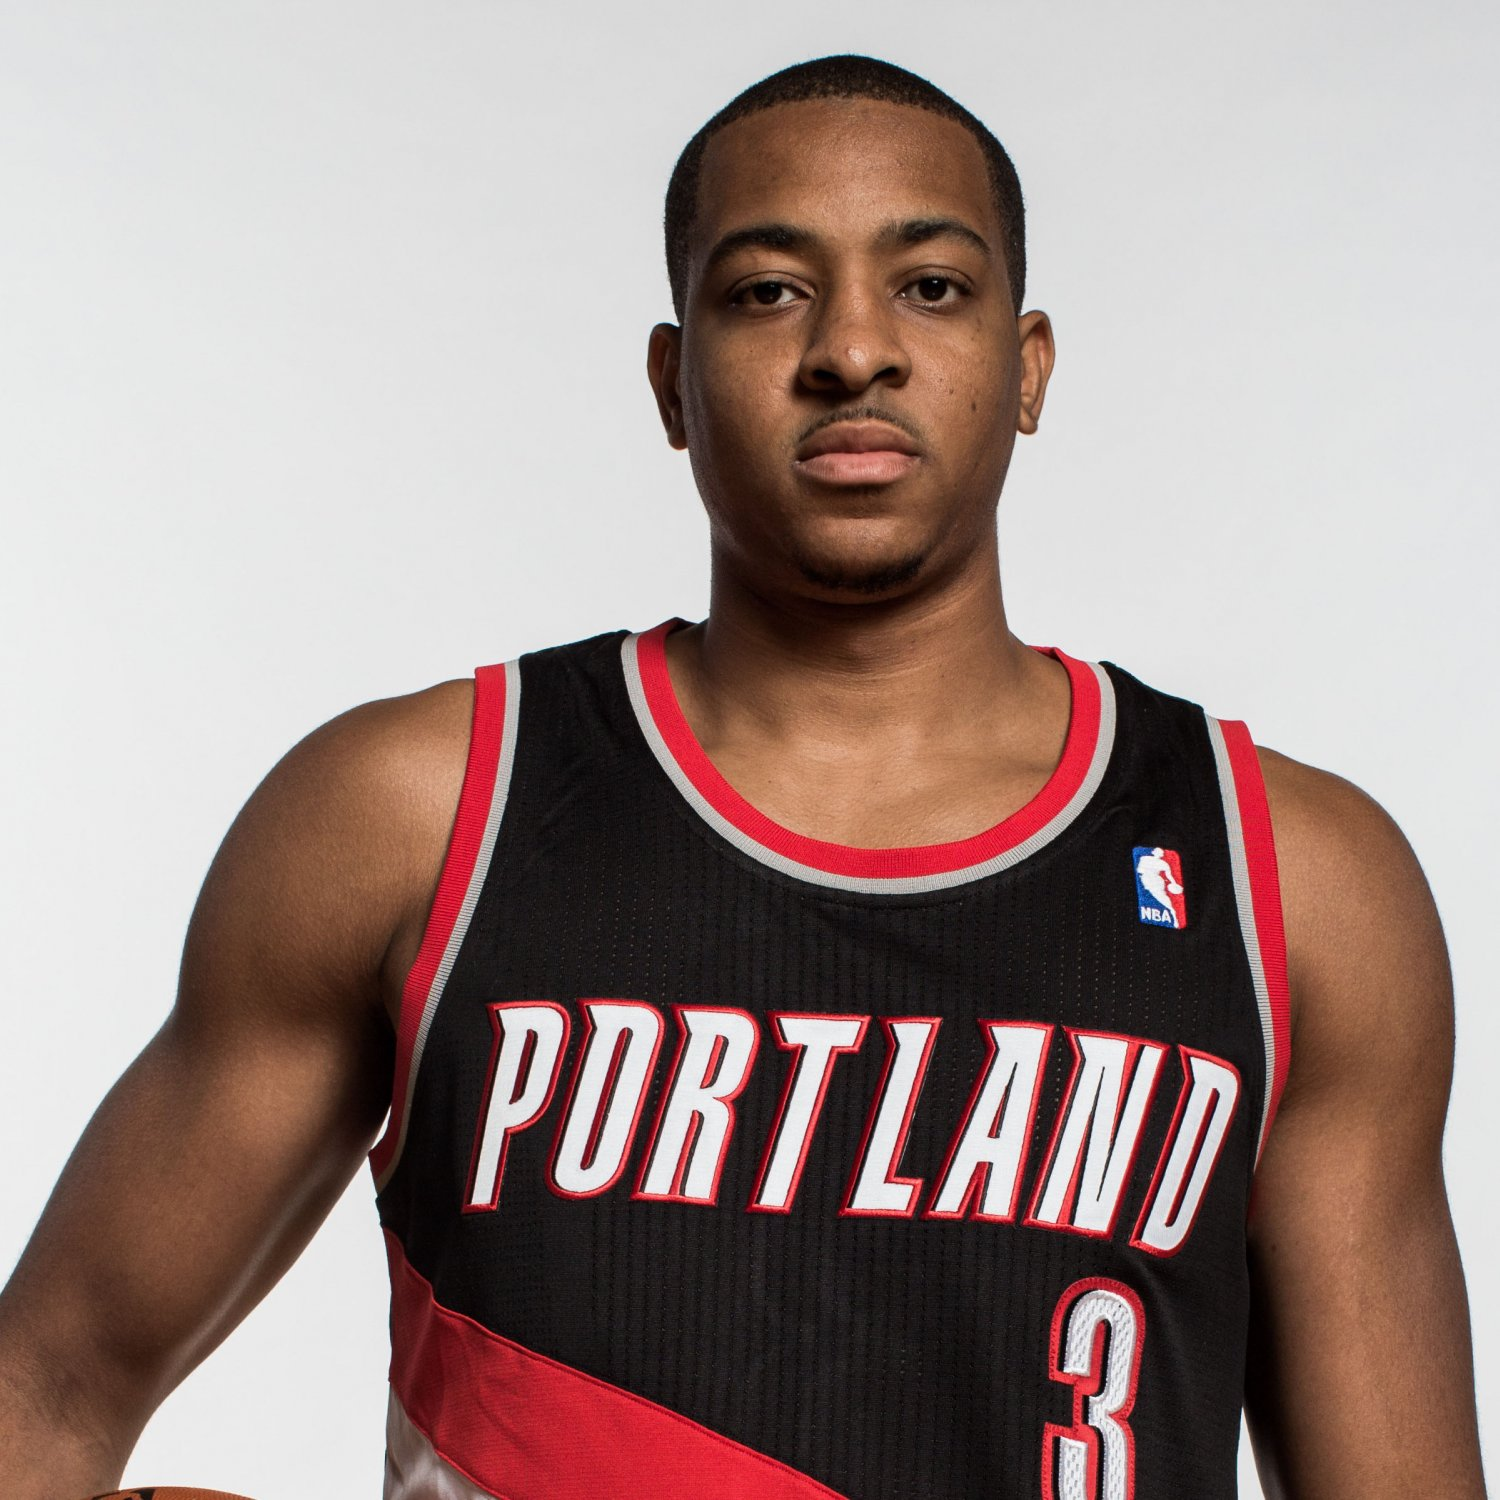 Portland Blazers Number 30: The Biggest Training Camp Mysteries For Portland Trail